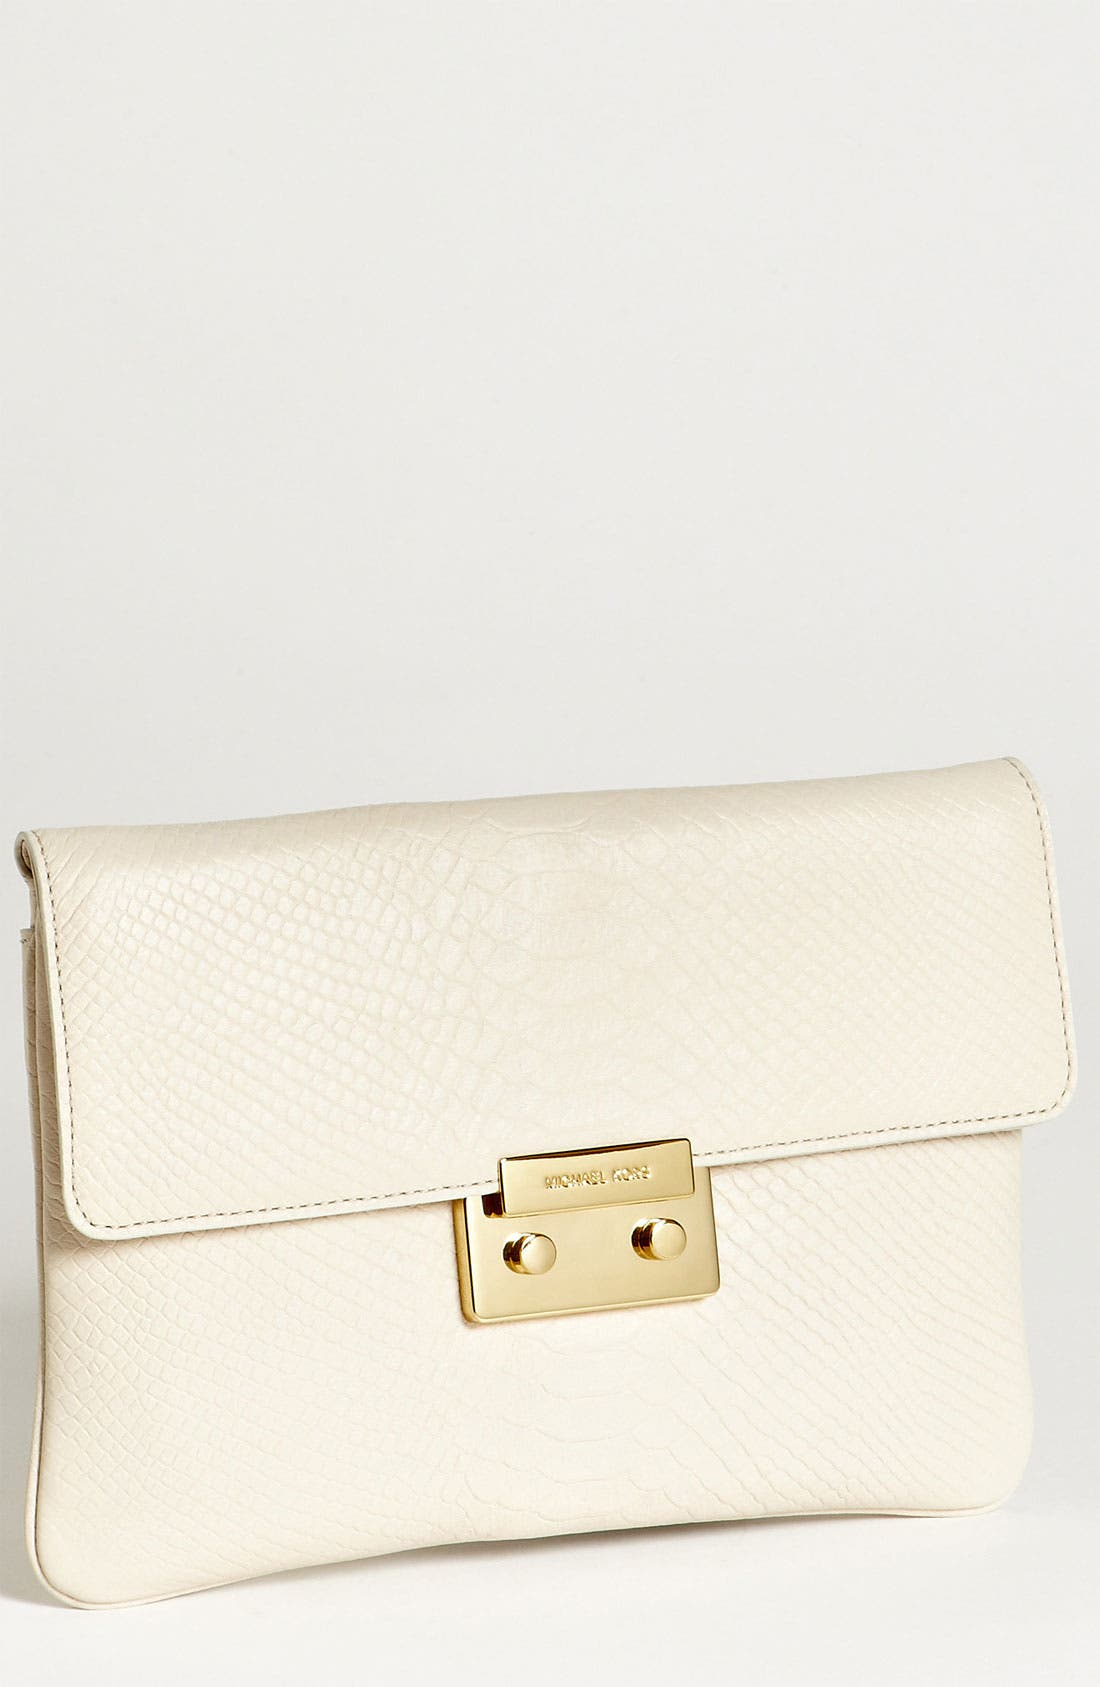 Alternate Image 1 Selected - MICHAEL Michael Kors 'Sloan' Snake Embossed Leather Clutch